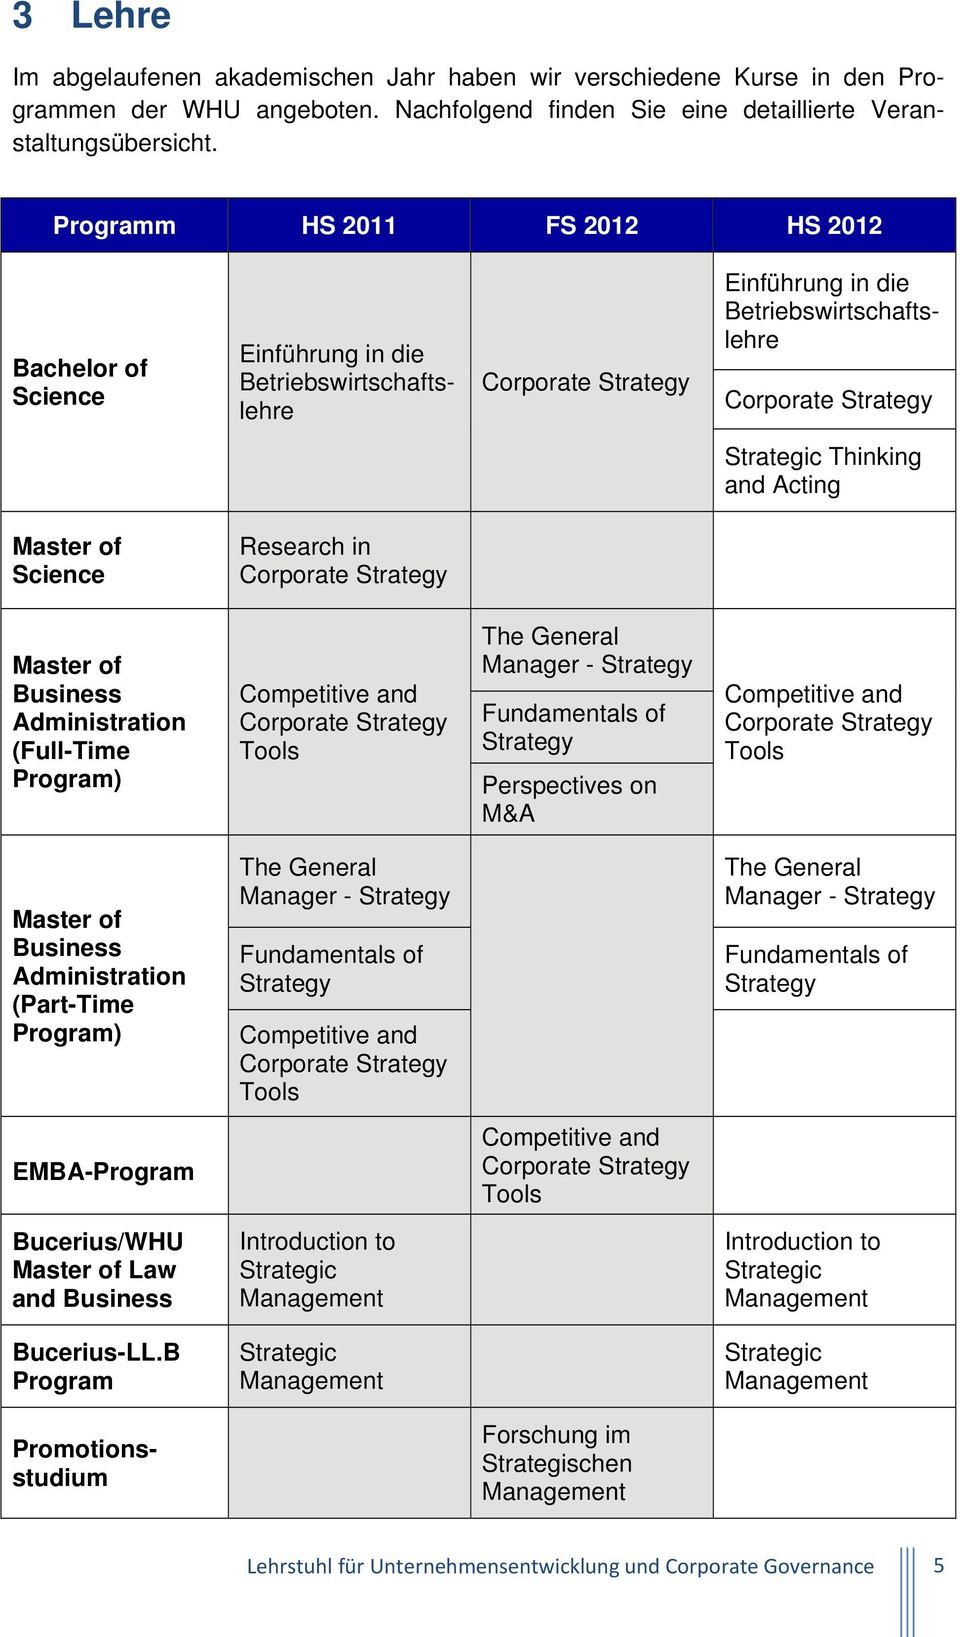 Acting Master of Science Research in Corporate Strategy Master of Business Administration (Full-Time Program) Competitive and Corporate Strategy Tools The General Manager - Strategy Fundamentals of